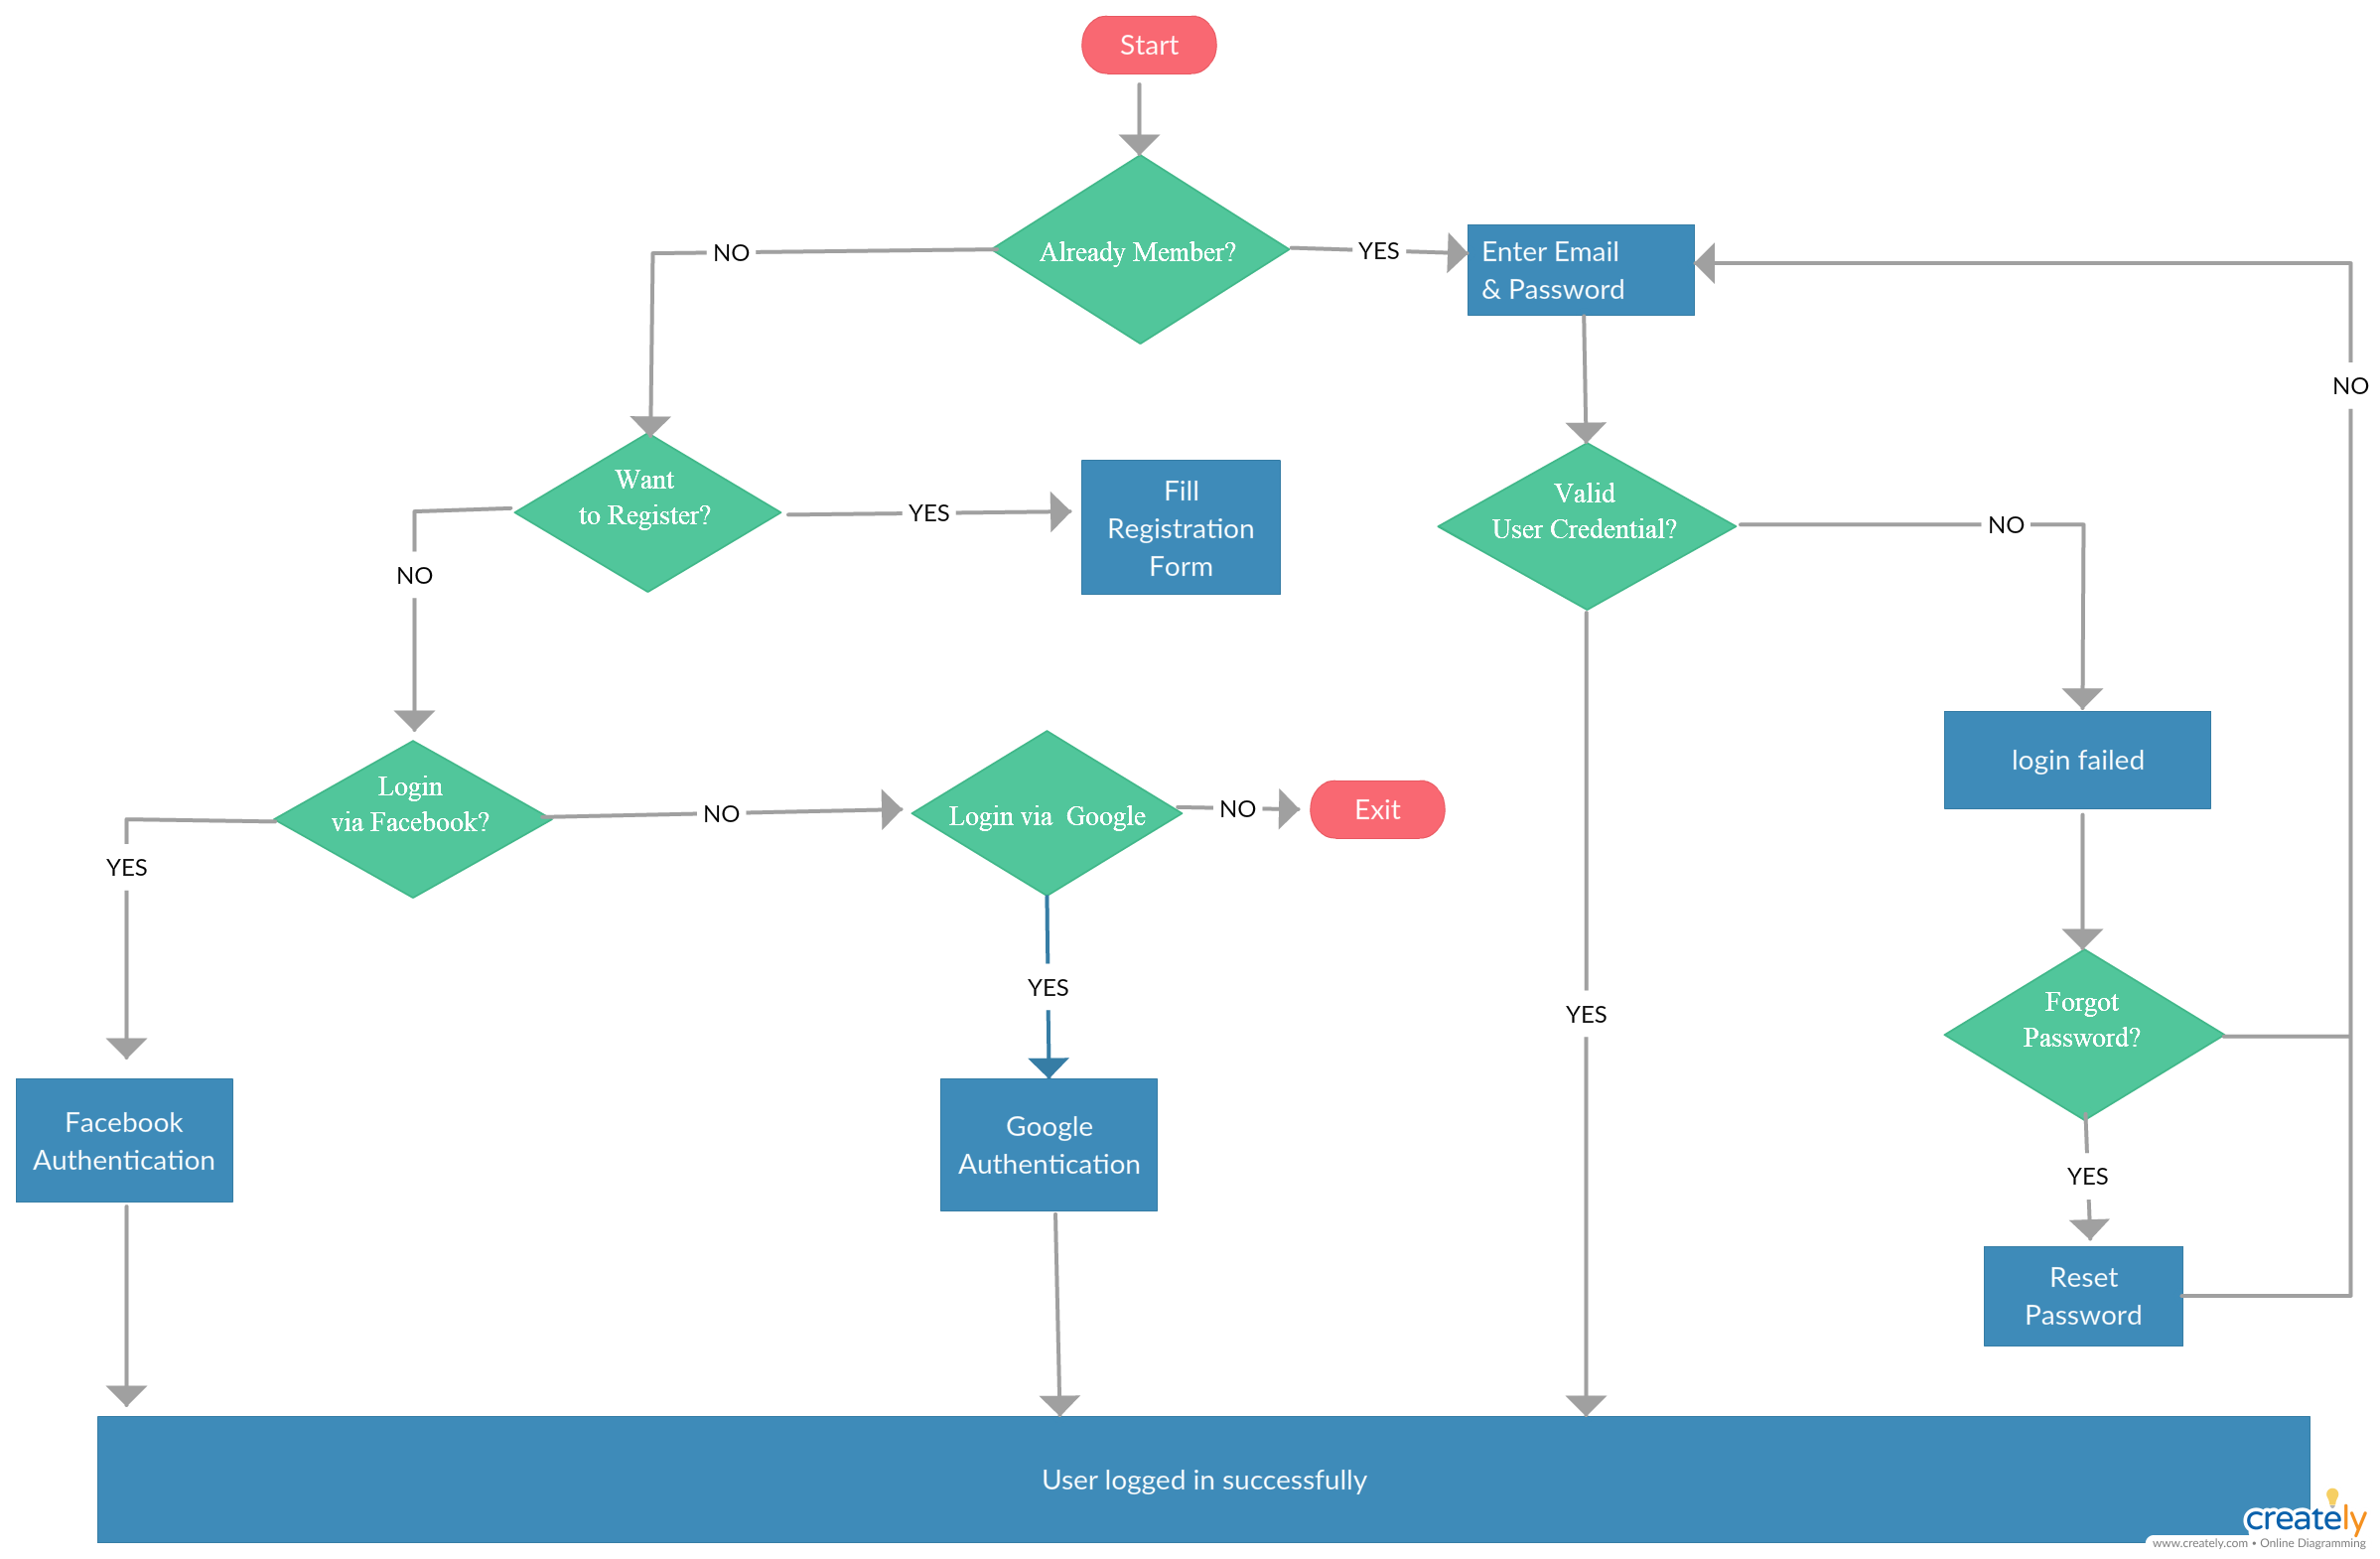 User registration process flow diagram is how  will do signup or log in using facebook google email to also rh pinterest